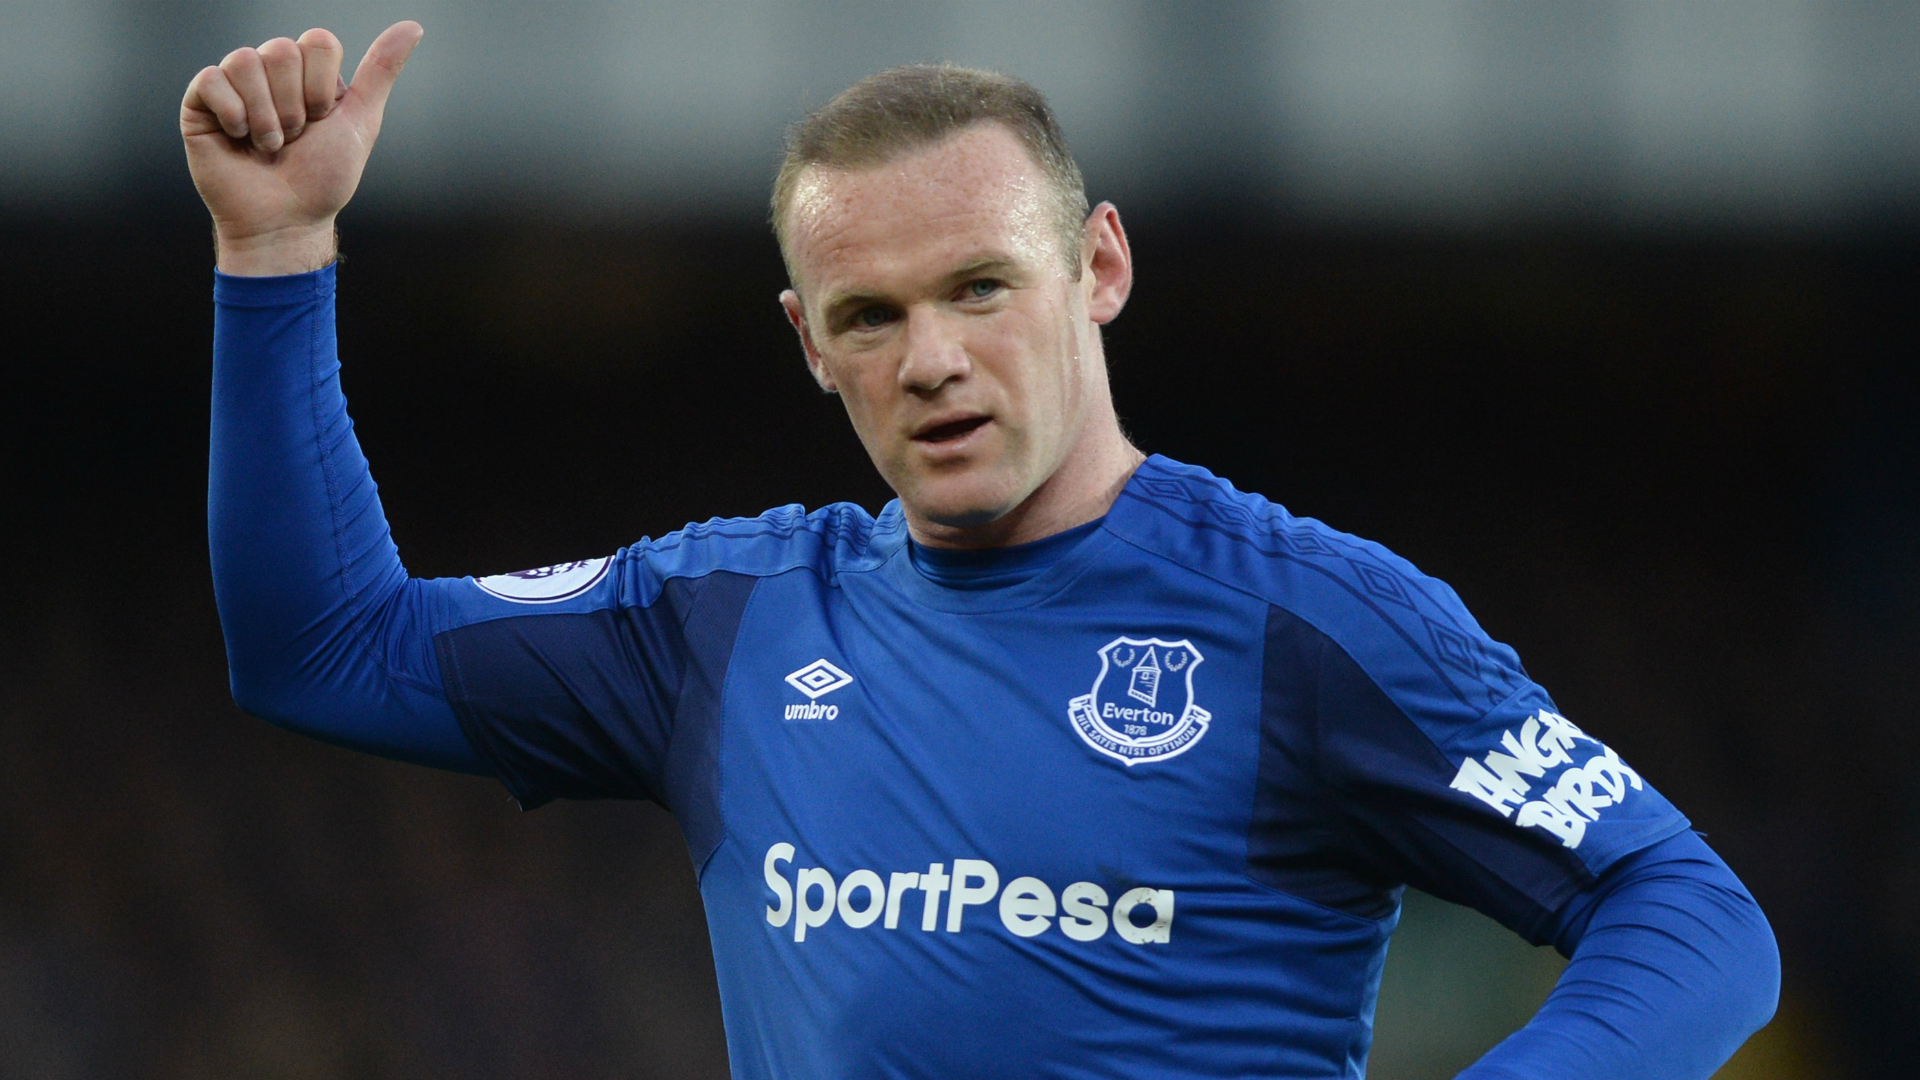 Wayne Rooney announced as a D.C. United player